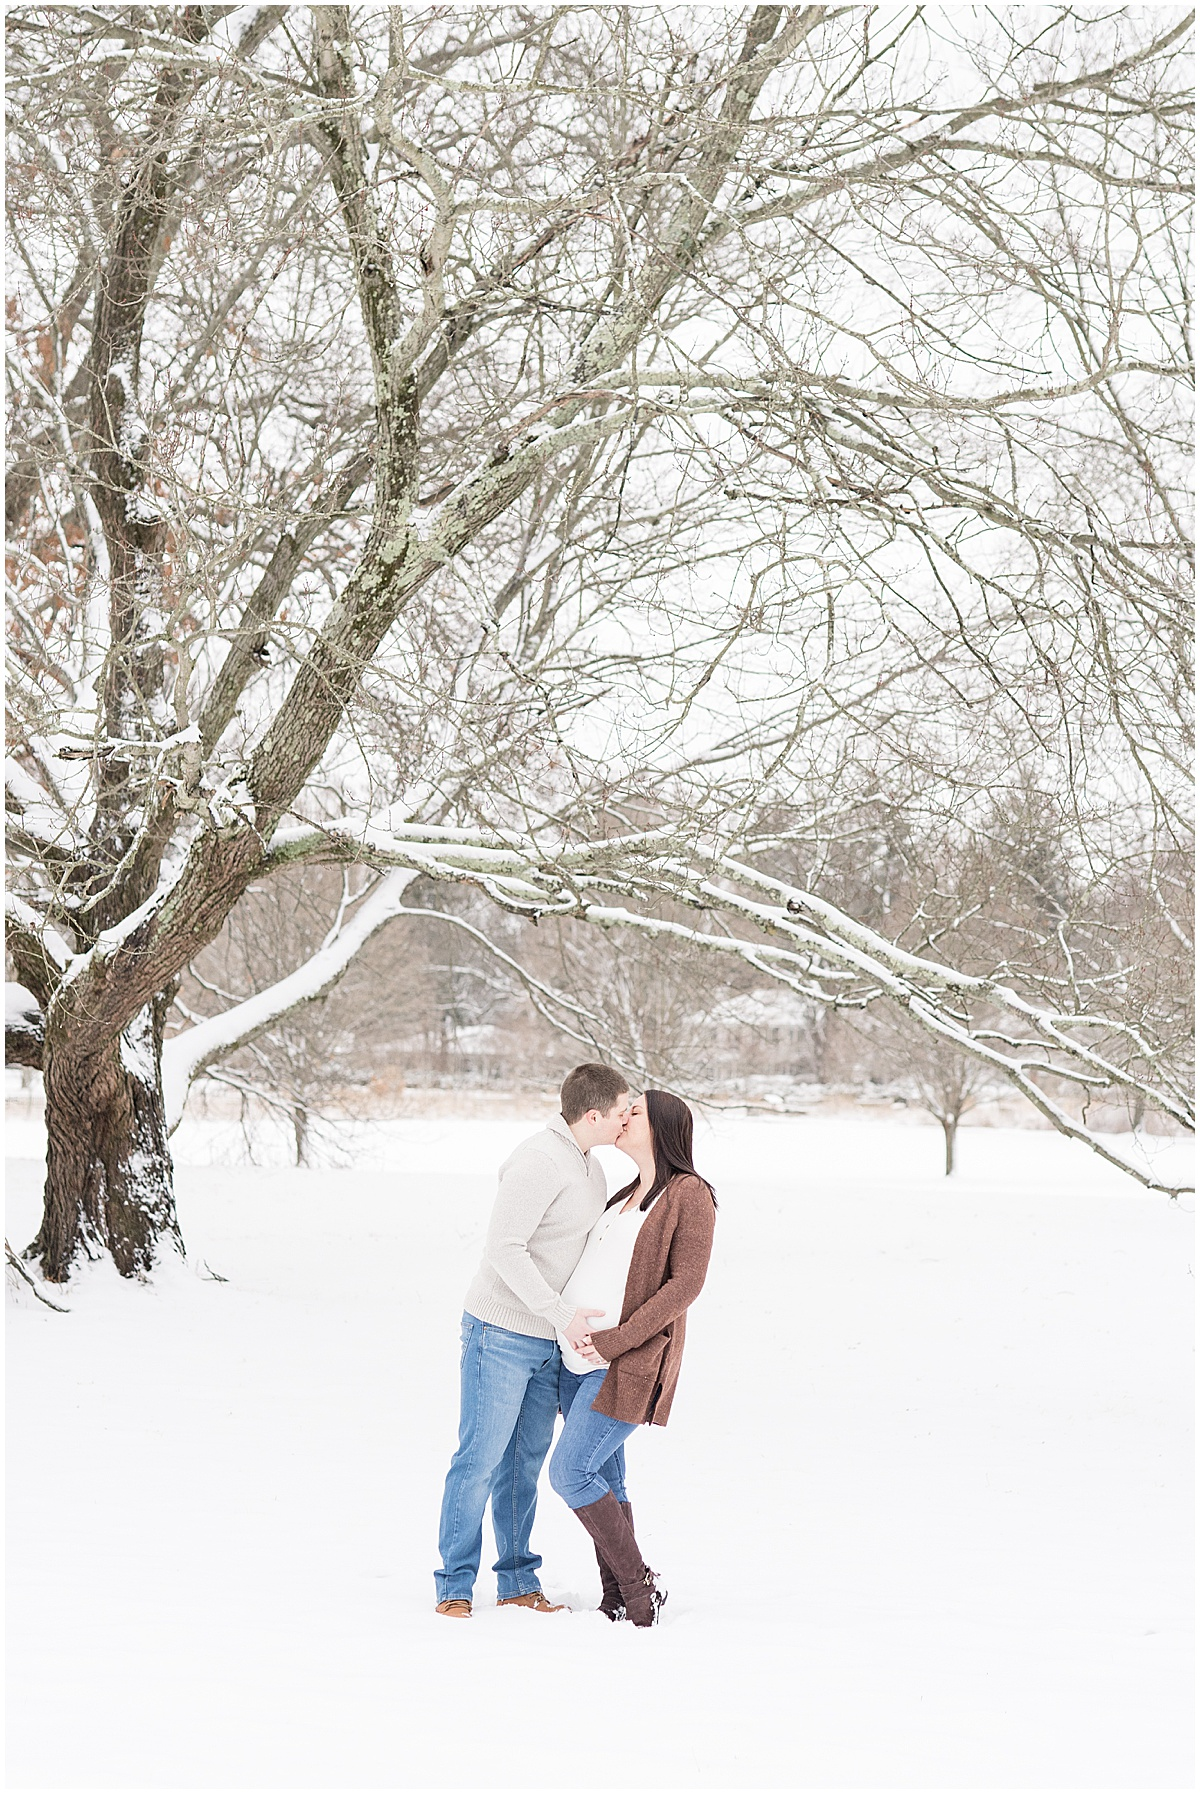 Holliday Park maternity photos in Indianapolis with snow